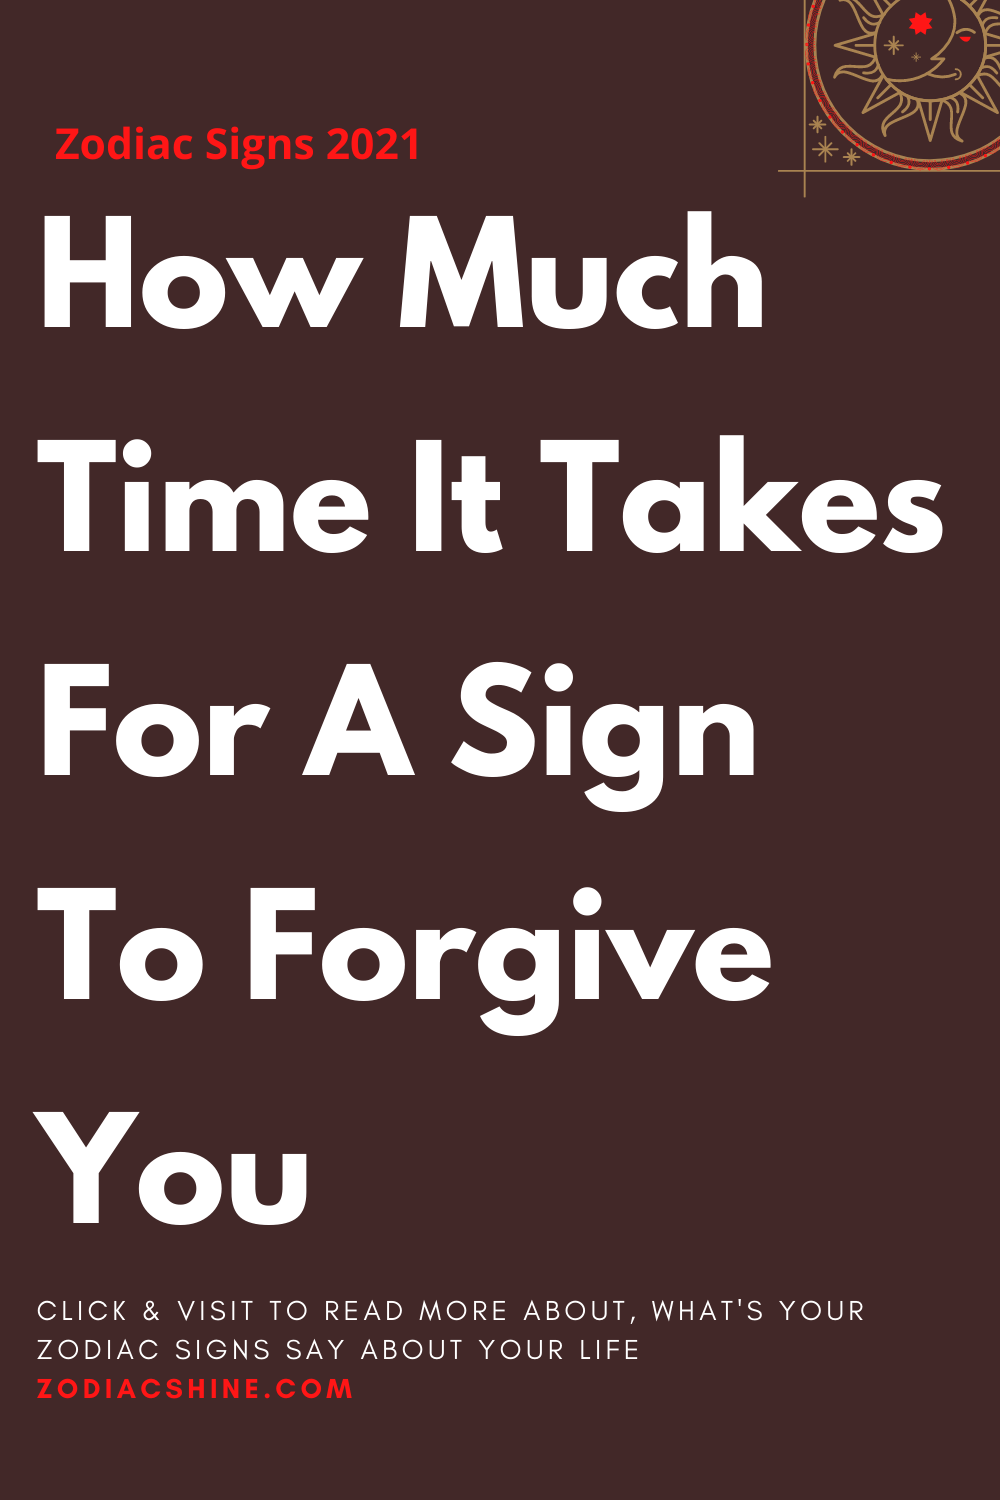 How Much Time It Takes For A Sign To Forgive You